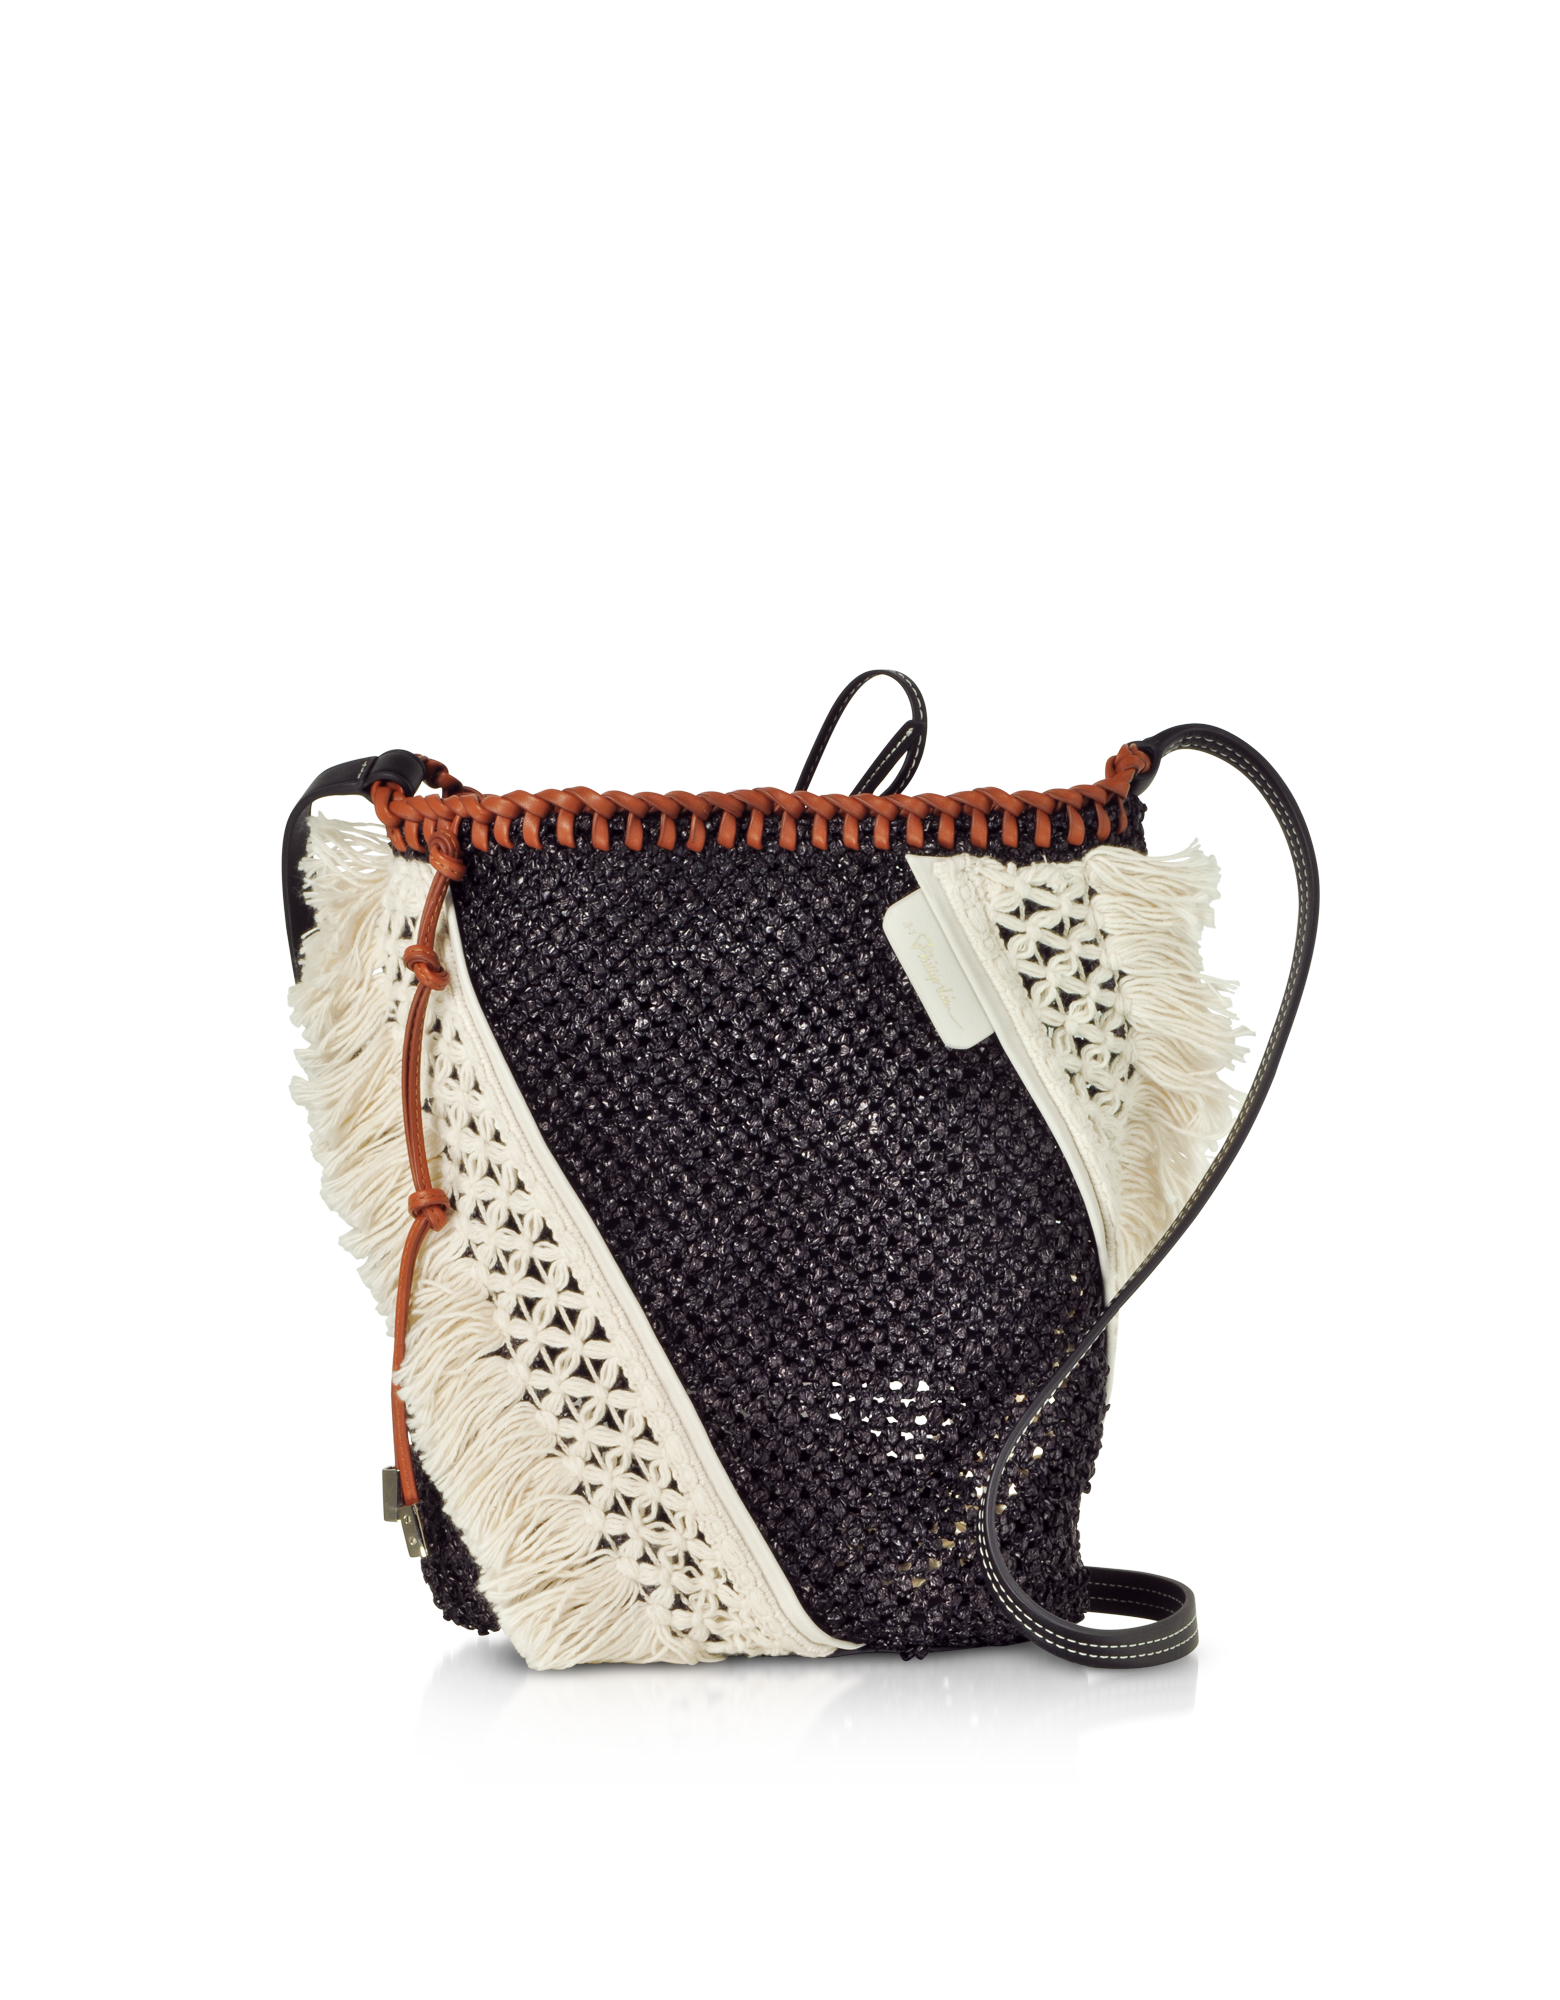 Image of Black and Cognac Marlee Mini Cross-Body